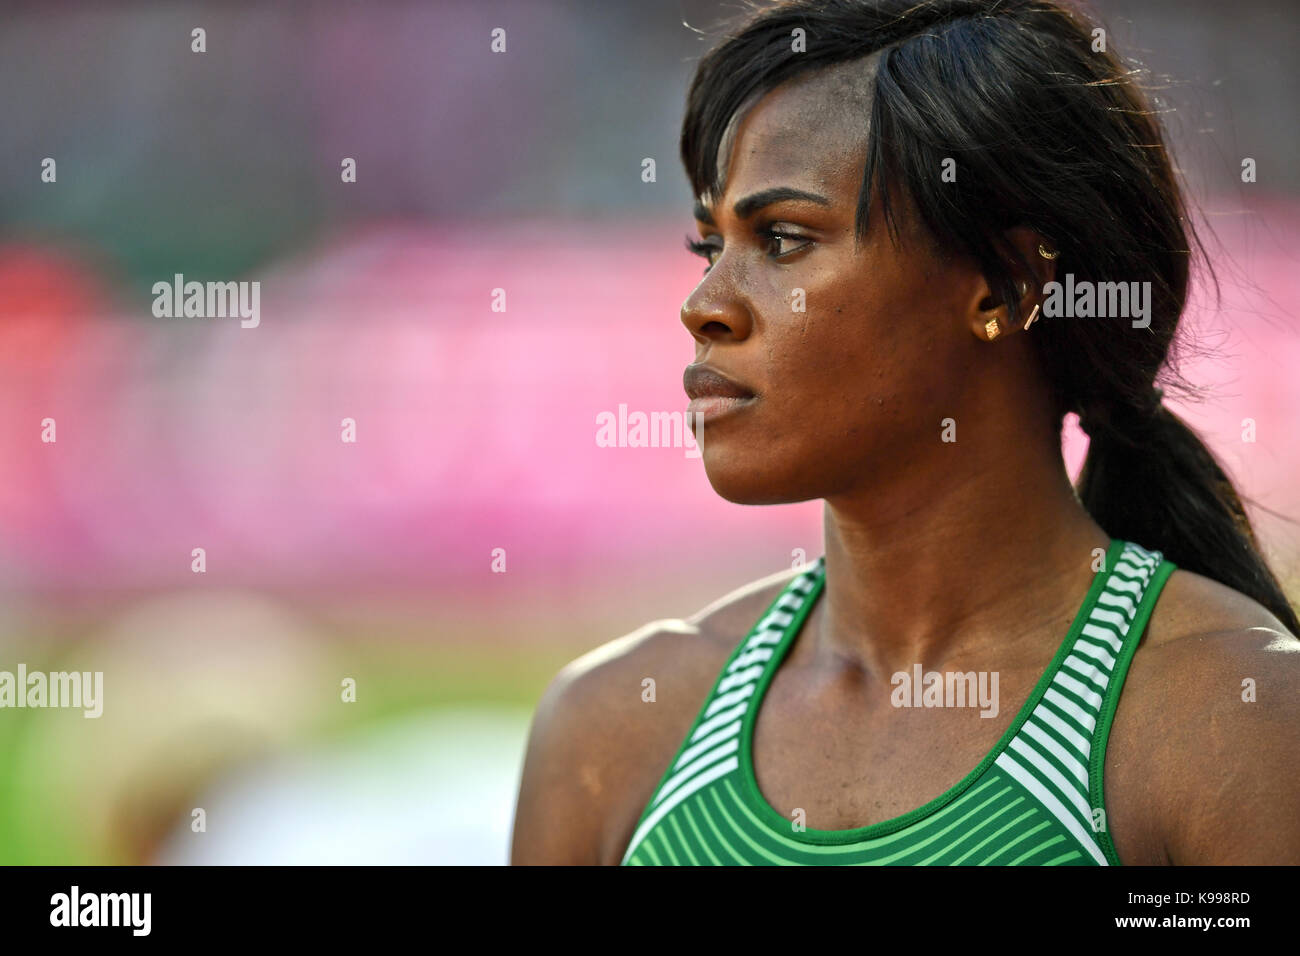 Blessing Okagbare-Ighoteguonor (Nigeria) - Long Jump - IAAF Athletics World Championships - London 2017 - Stock Image